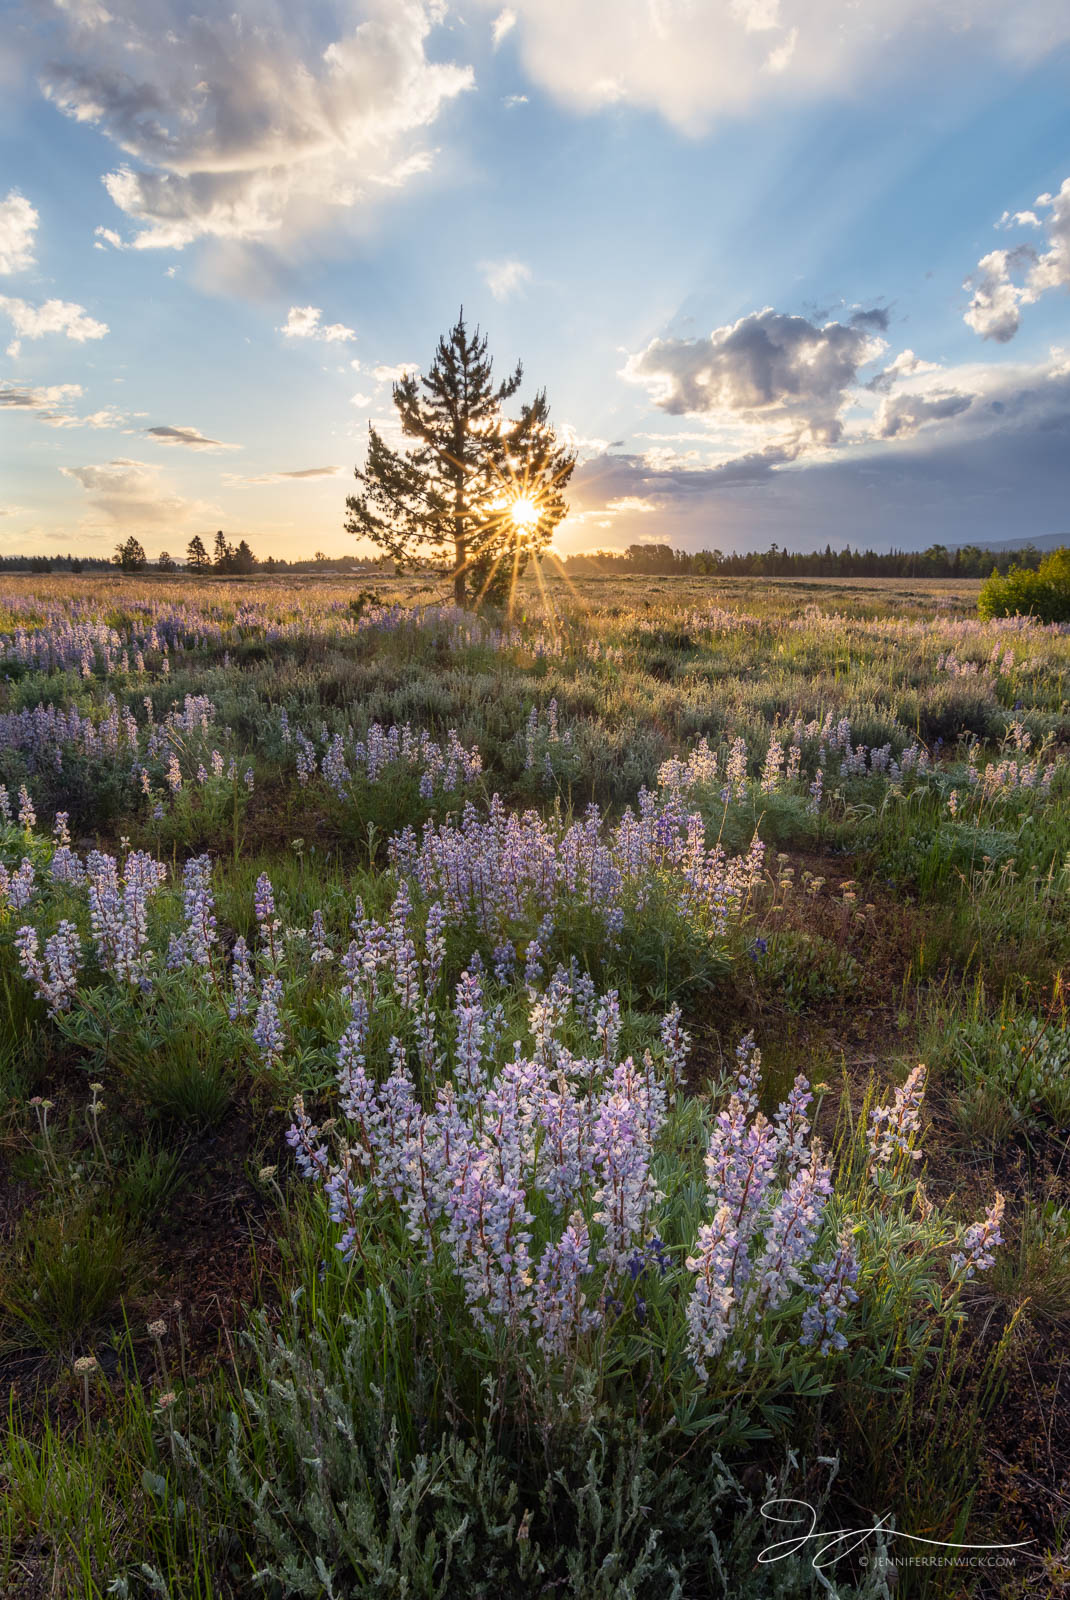 Grand Teton National Park, Wyoming, wildflowers, lupine, sunrise, sunburst, meadow, morning, lupine meadow, landscape, flowers, photo